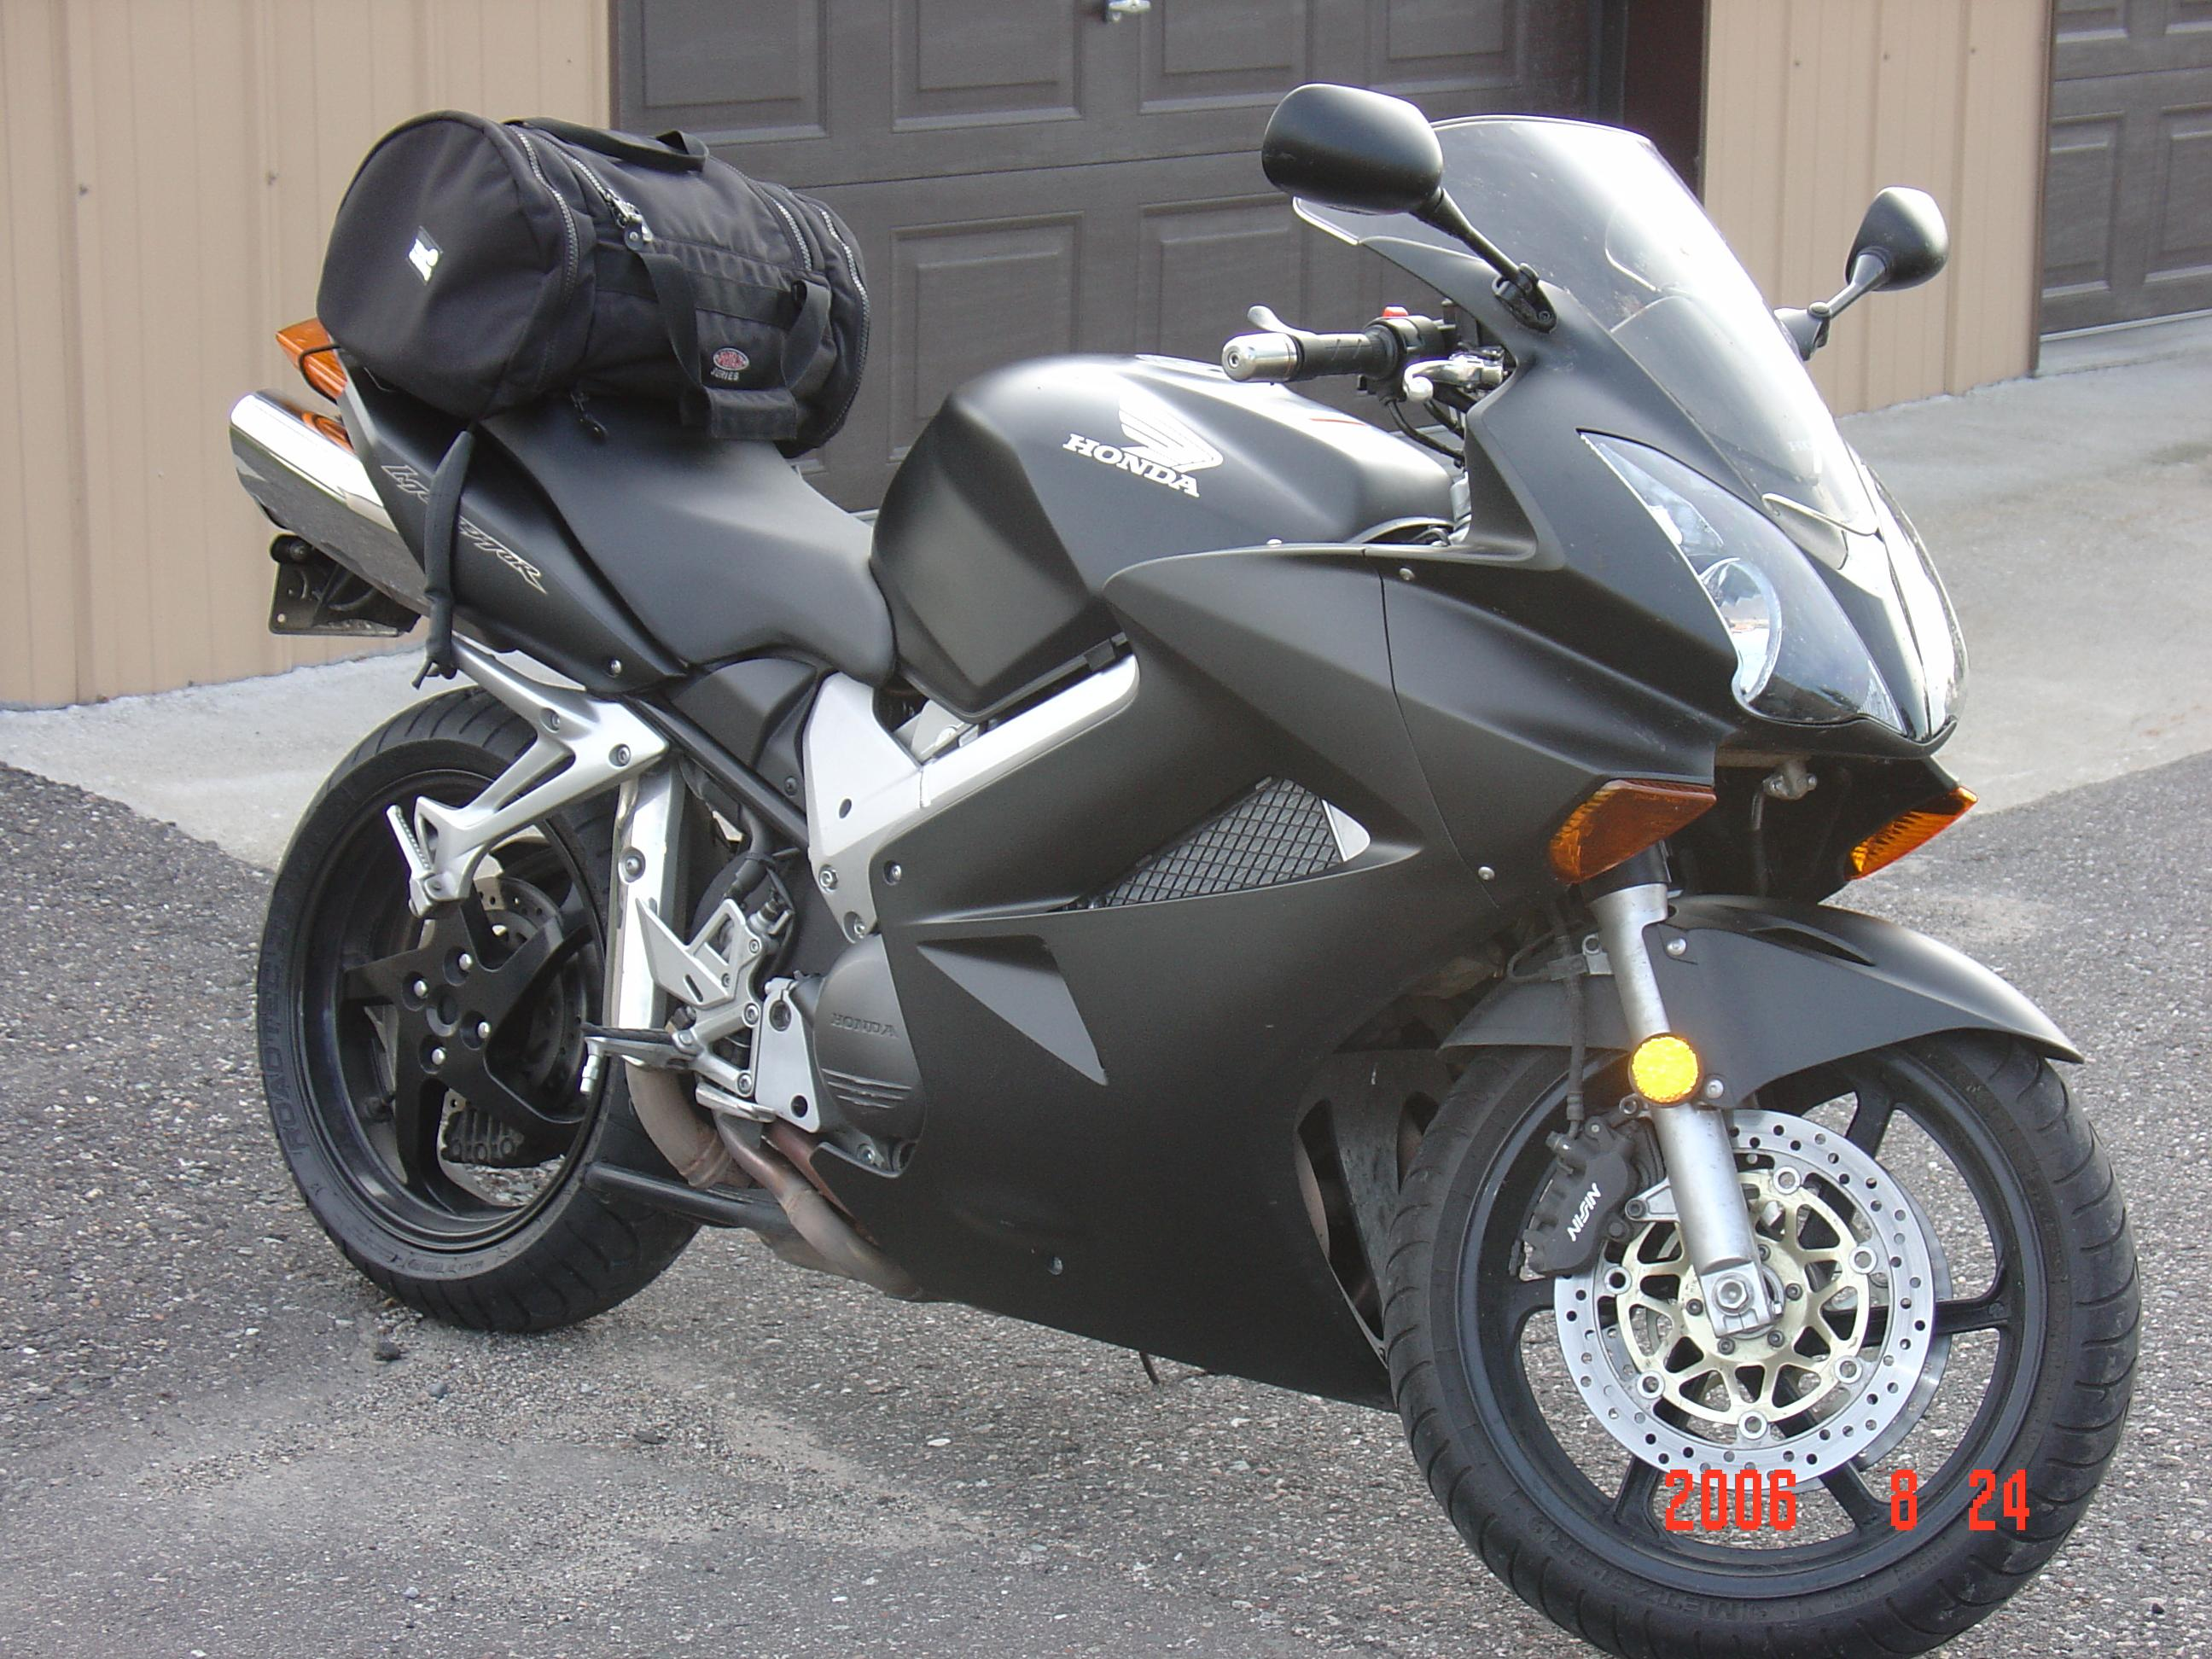 2004 honda vfr800fi interceptor moto zombdrive com. Black Bedroom Furniture Sets. Home Design Ideas